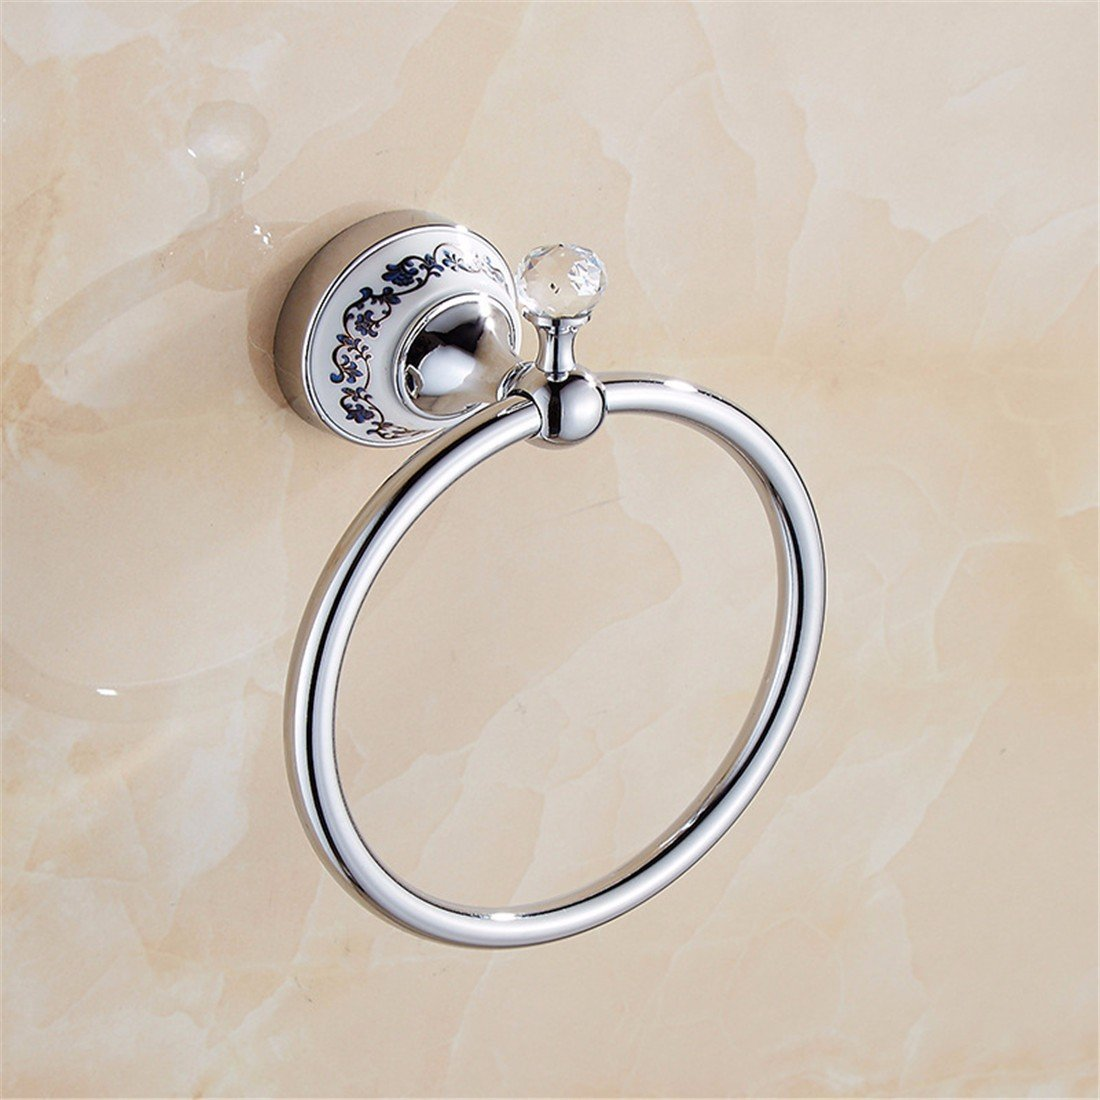 LAONA European style blue and white porcelain Crystal Silver, simple bathroom fittings, towel bar, toilet paper rack,Towel ring